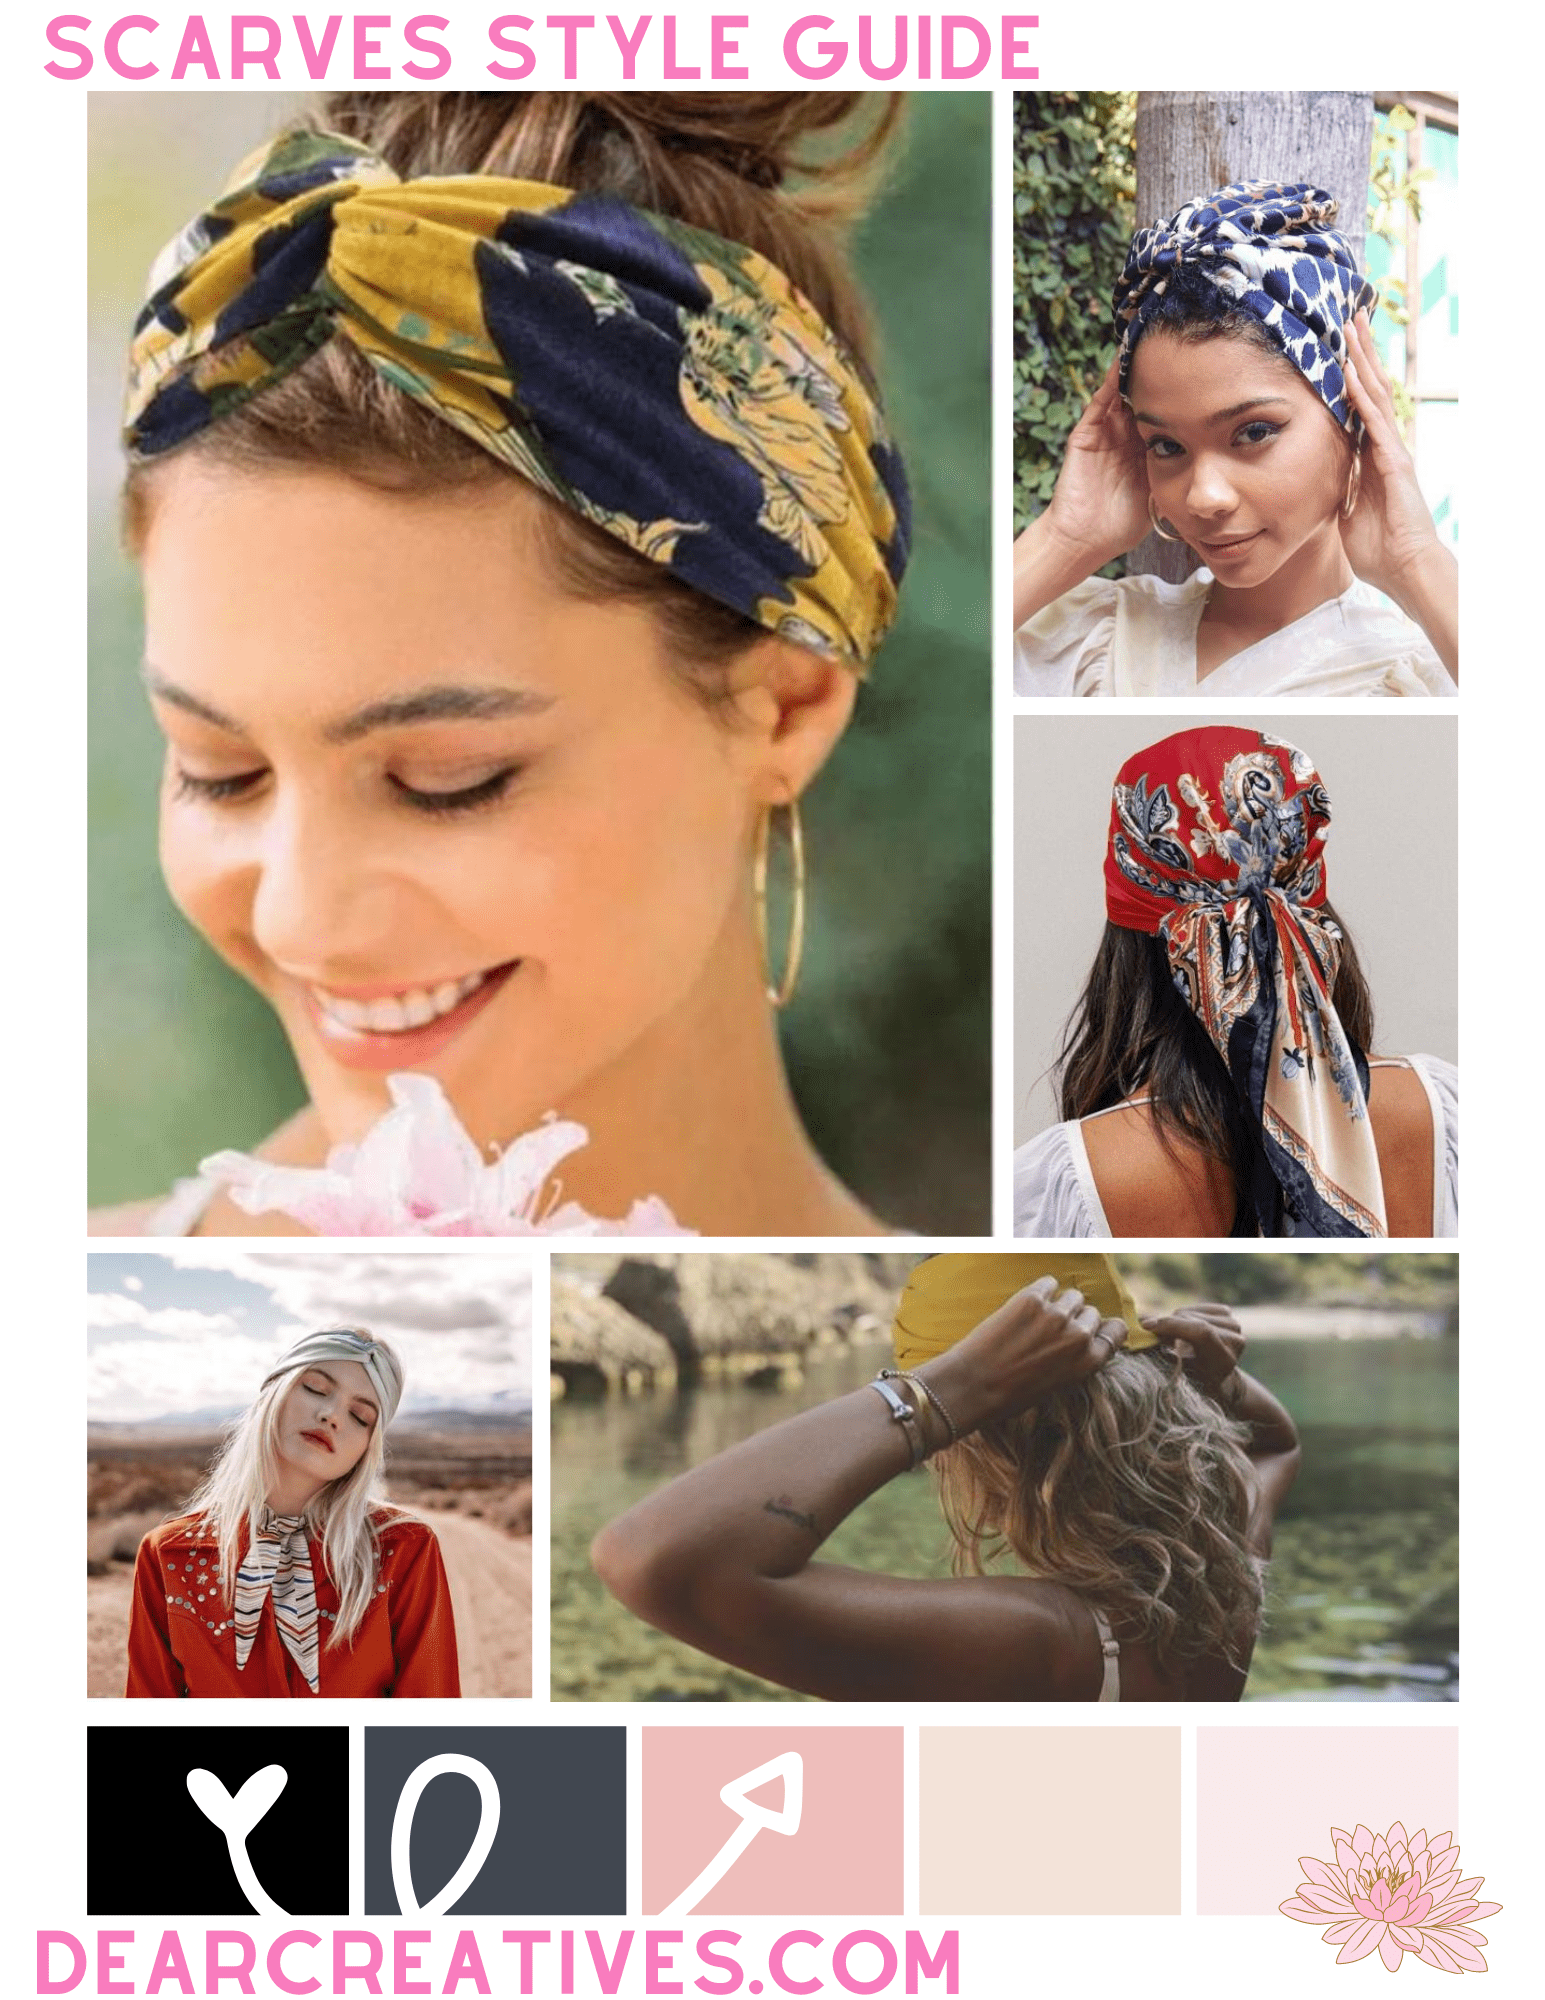 Summer Scarves + Sunglasses Trend & Style Guide